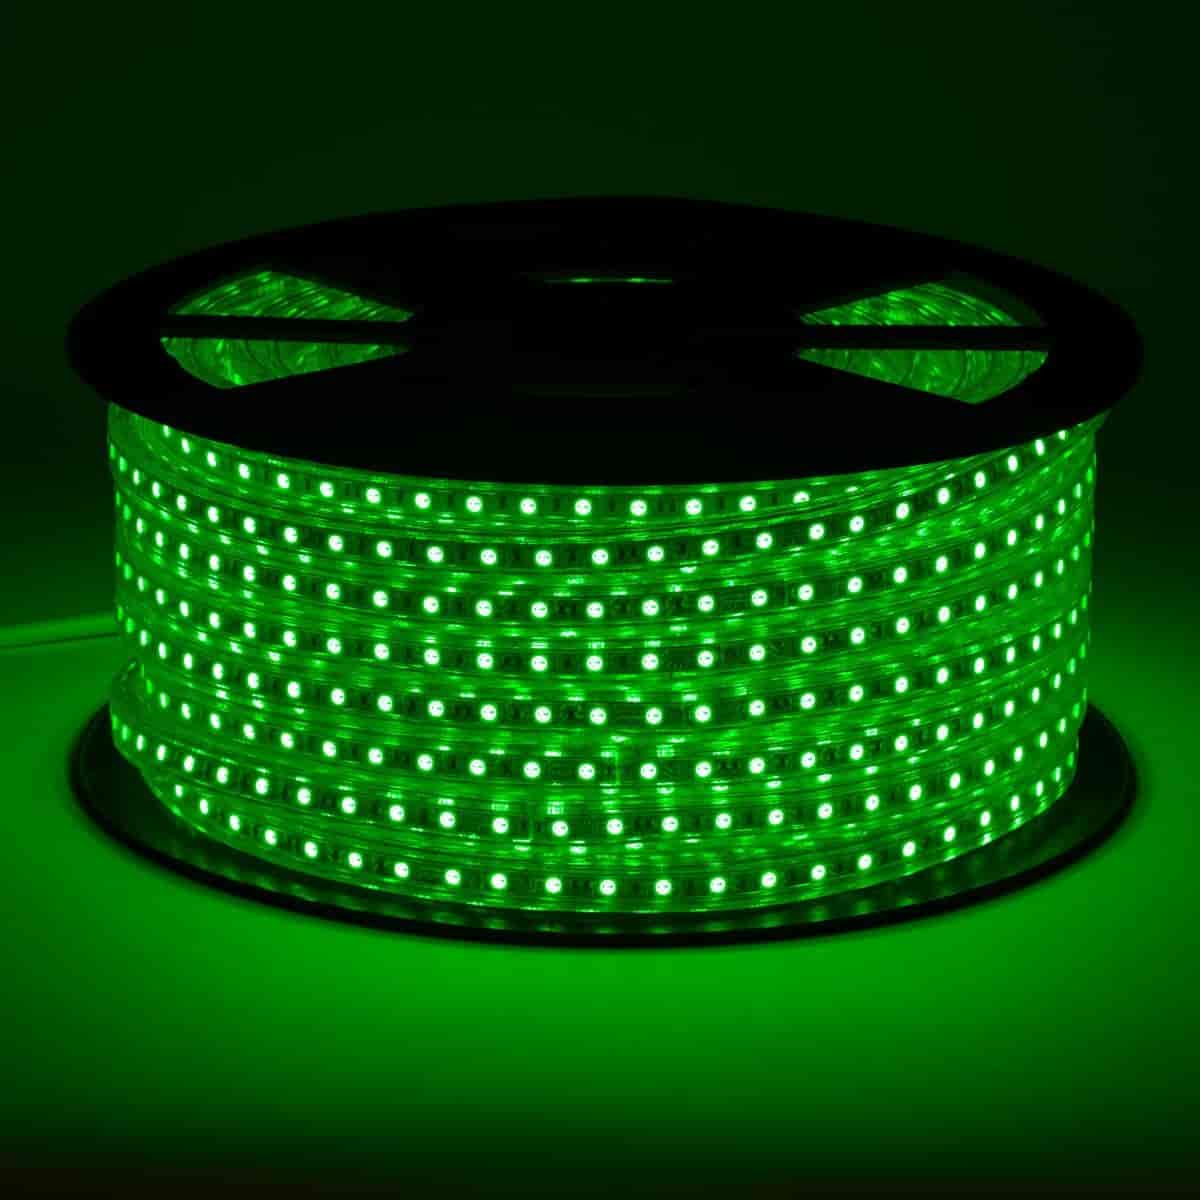 green led strip light on black reel displaying vivid light in intense green color